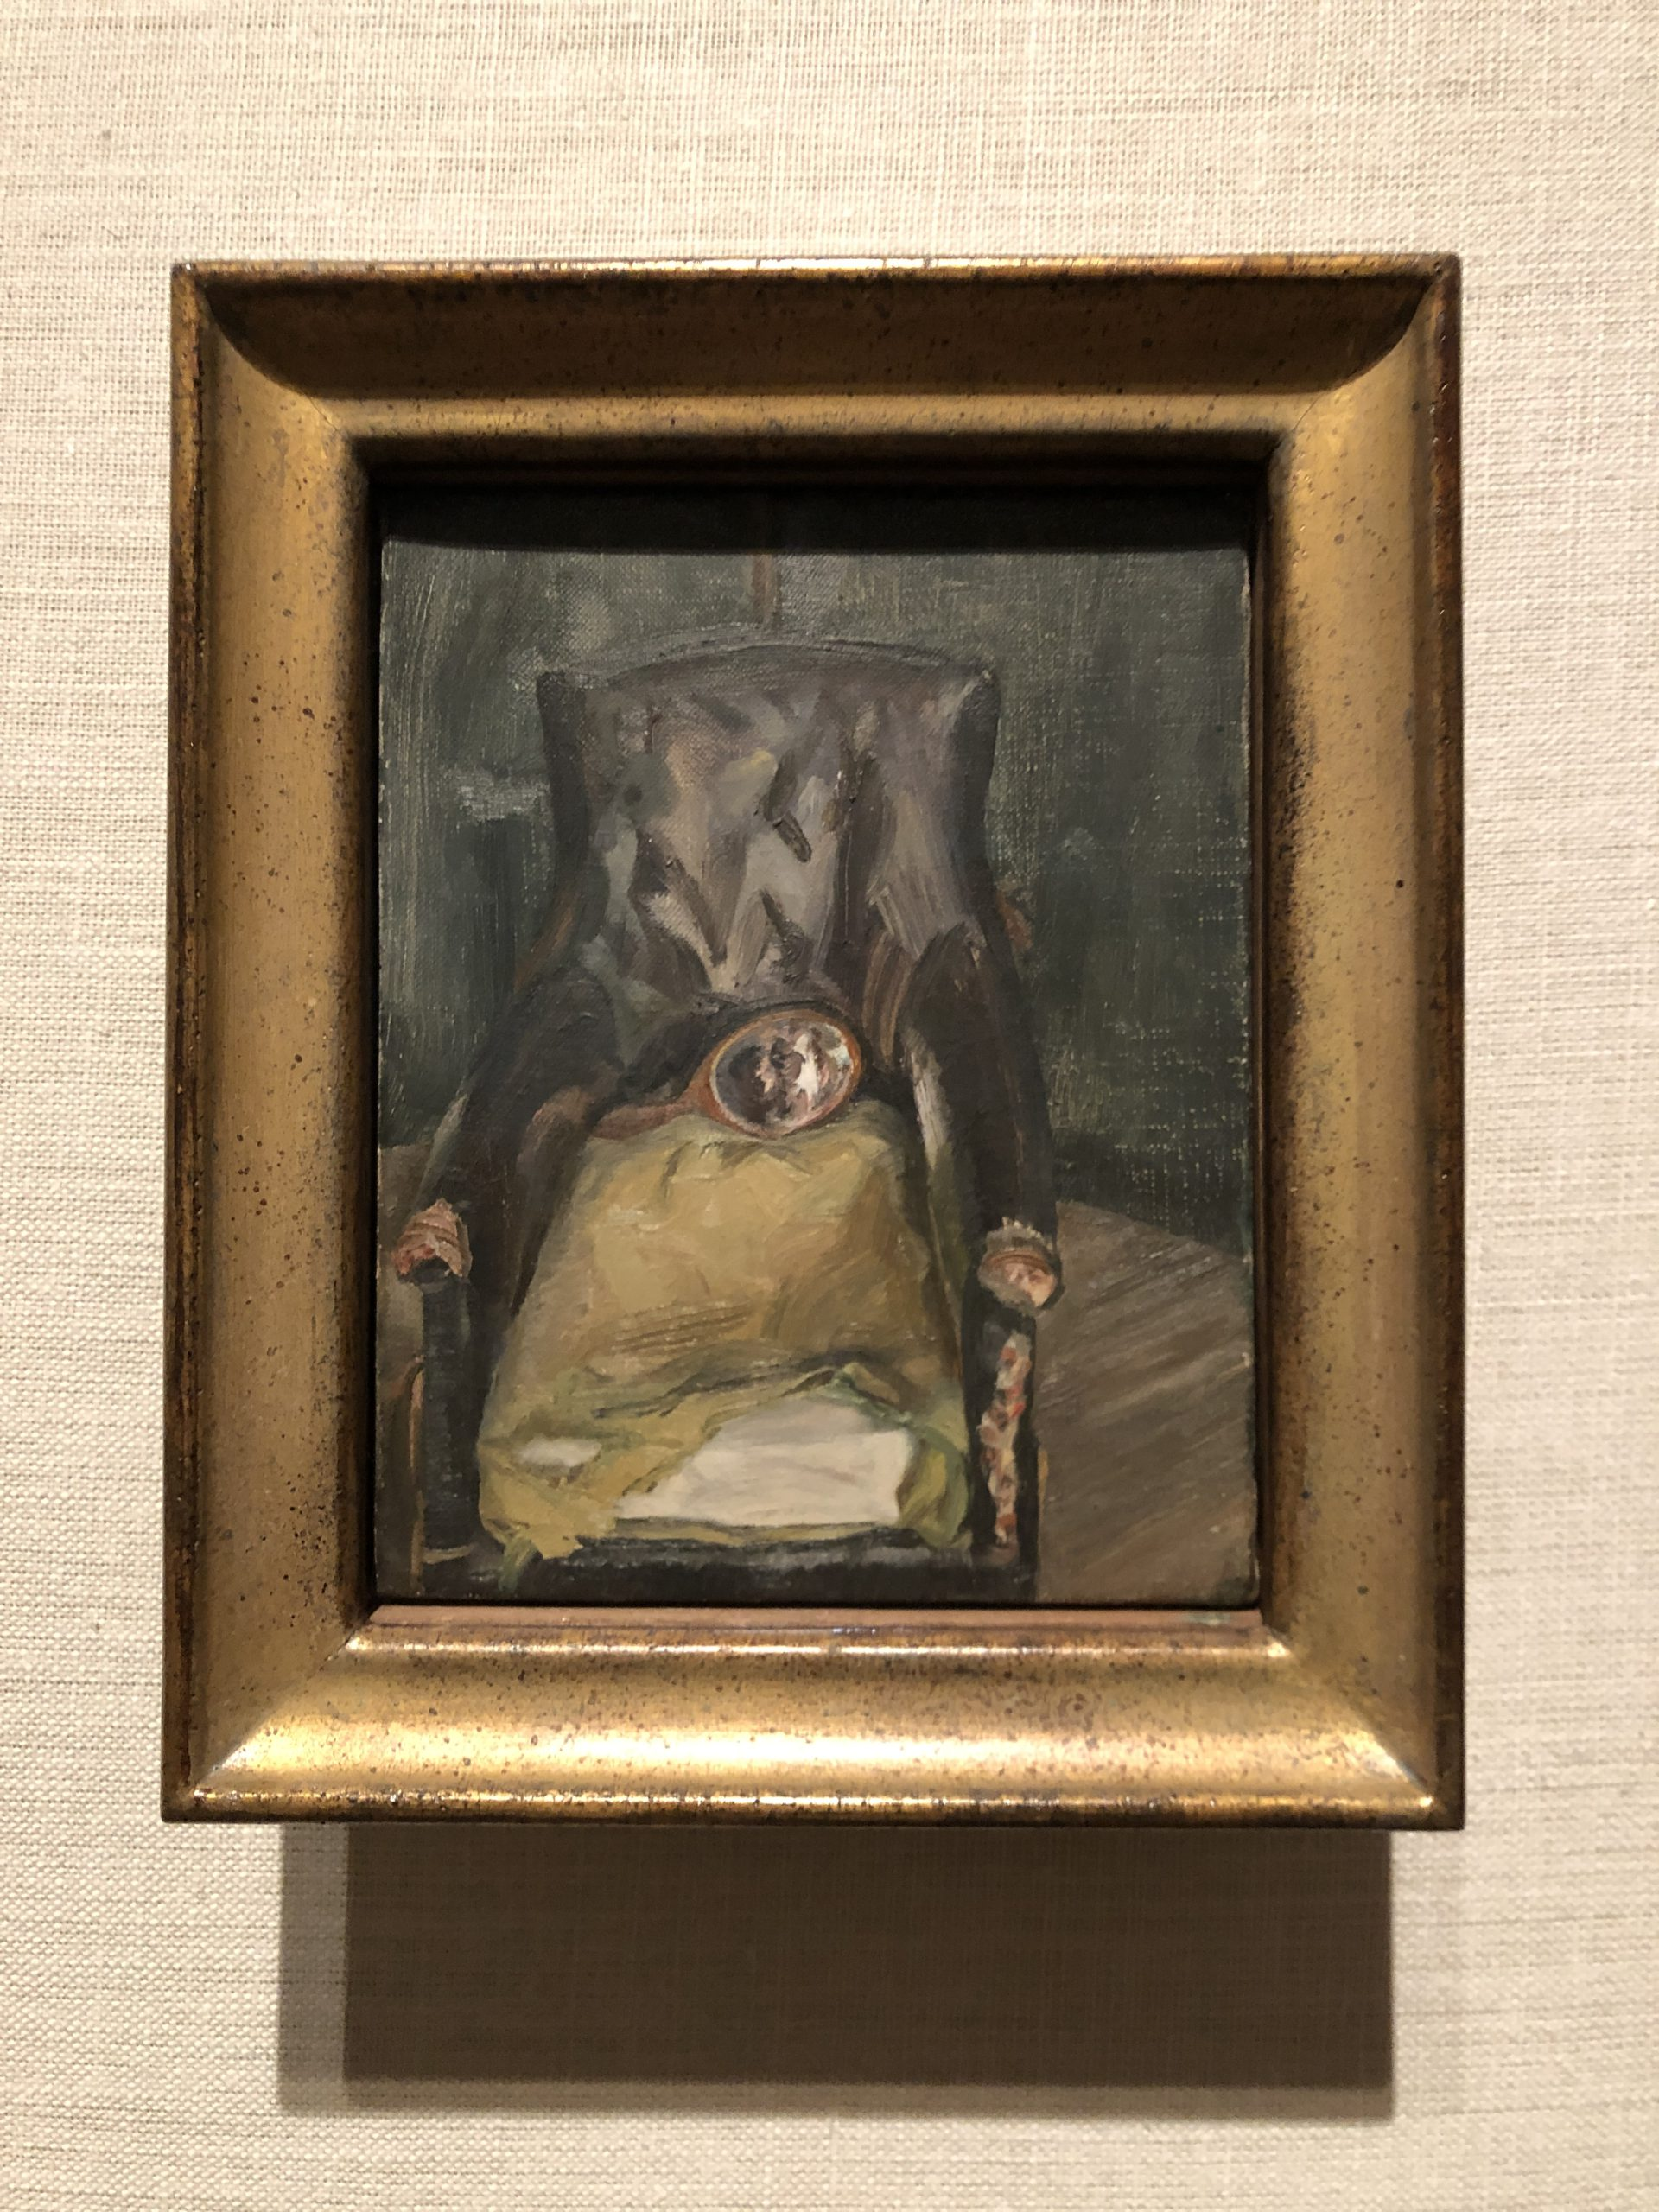 Image of artwork titled Hand Mirror on Chair by artist Lucian Freud